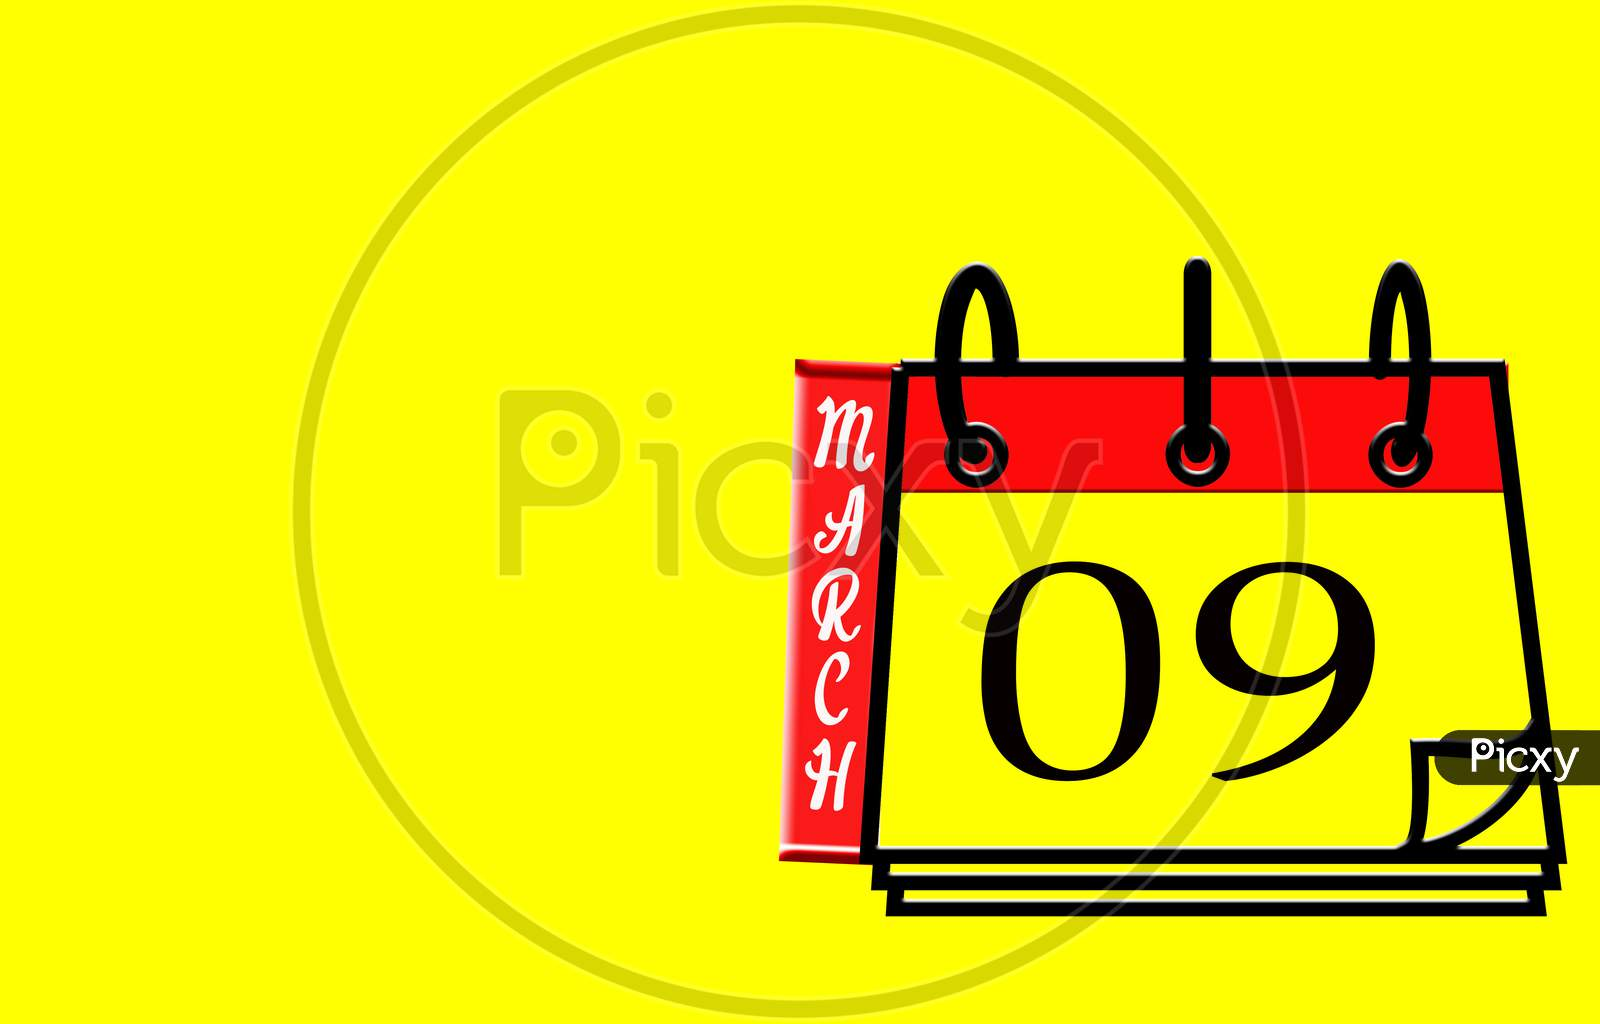 March 09, Calendar On Yellow Background